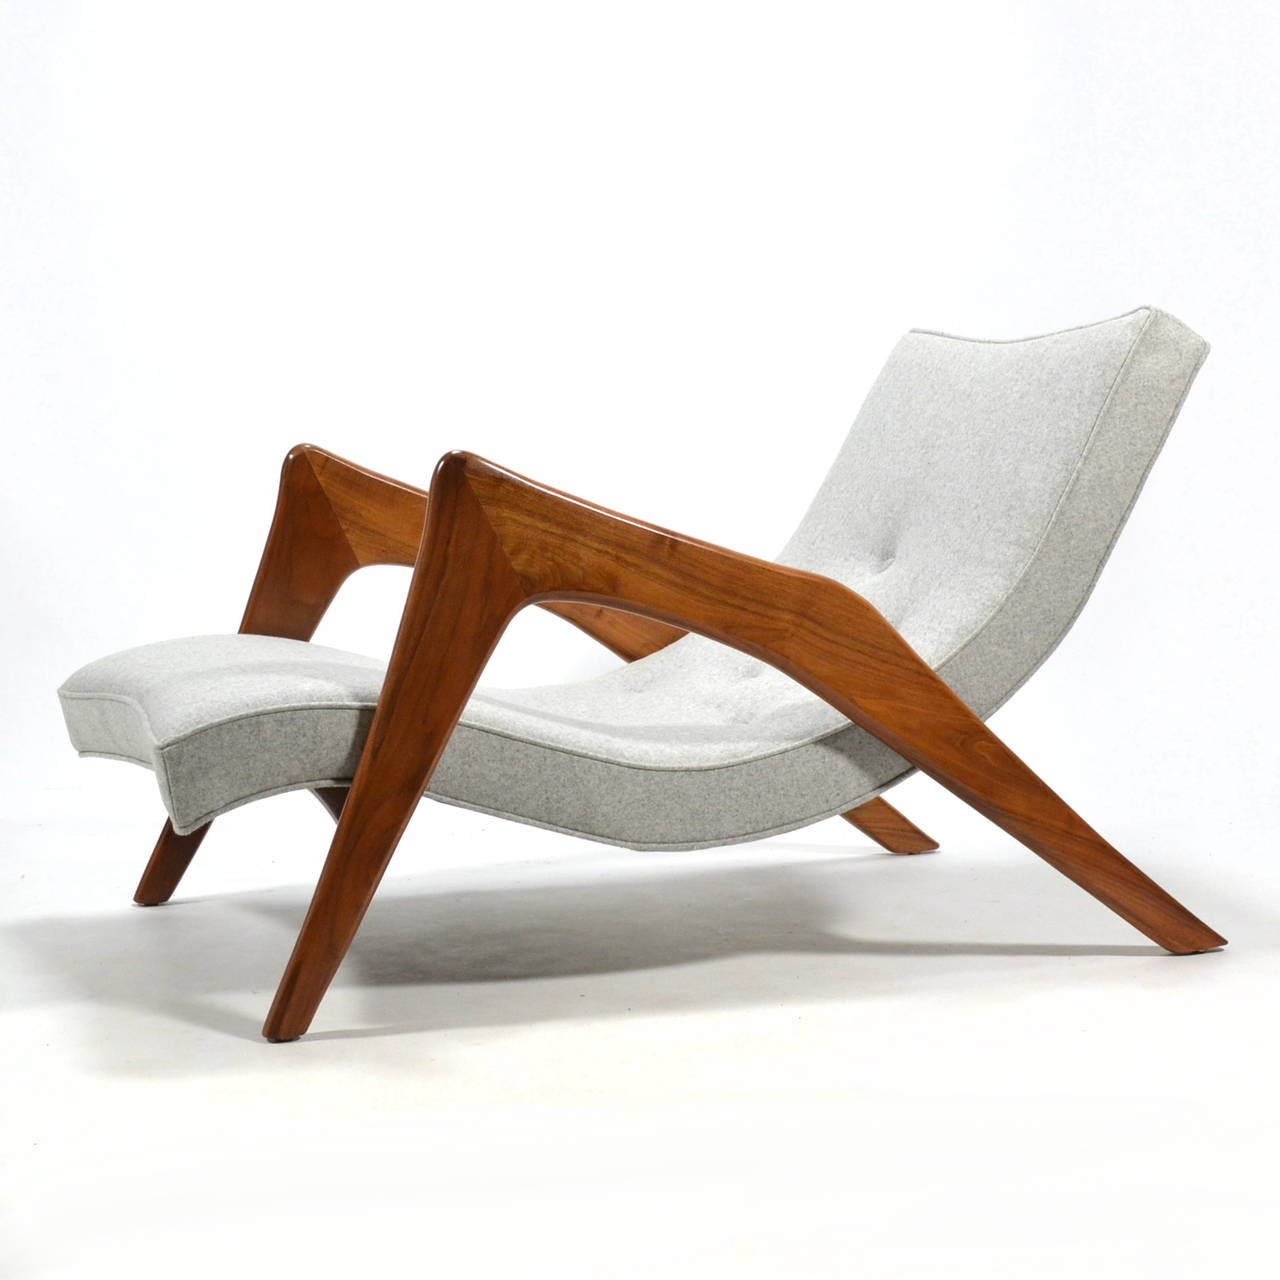 Mid-20th Century Adrian Pearsall Pair of Crescent Lounge Chairs and Ottomans For Sale